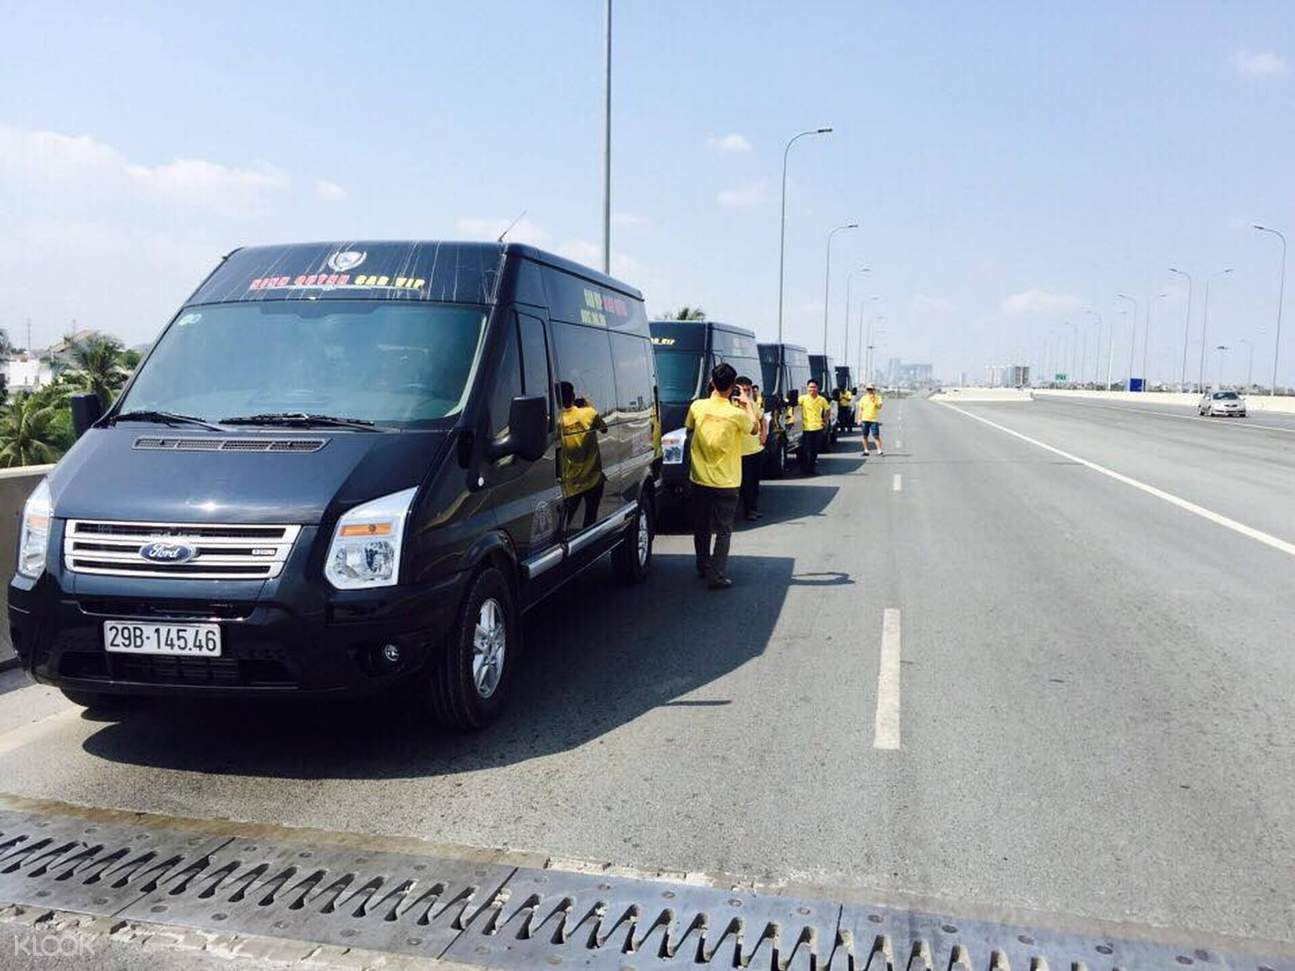 parked limousine along the highway